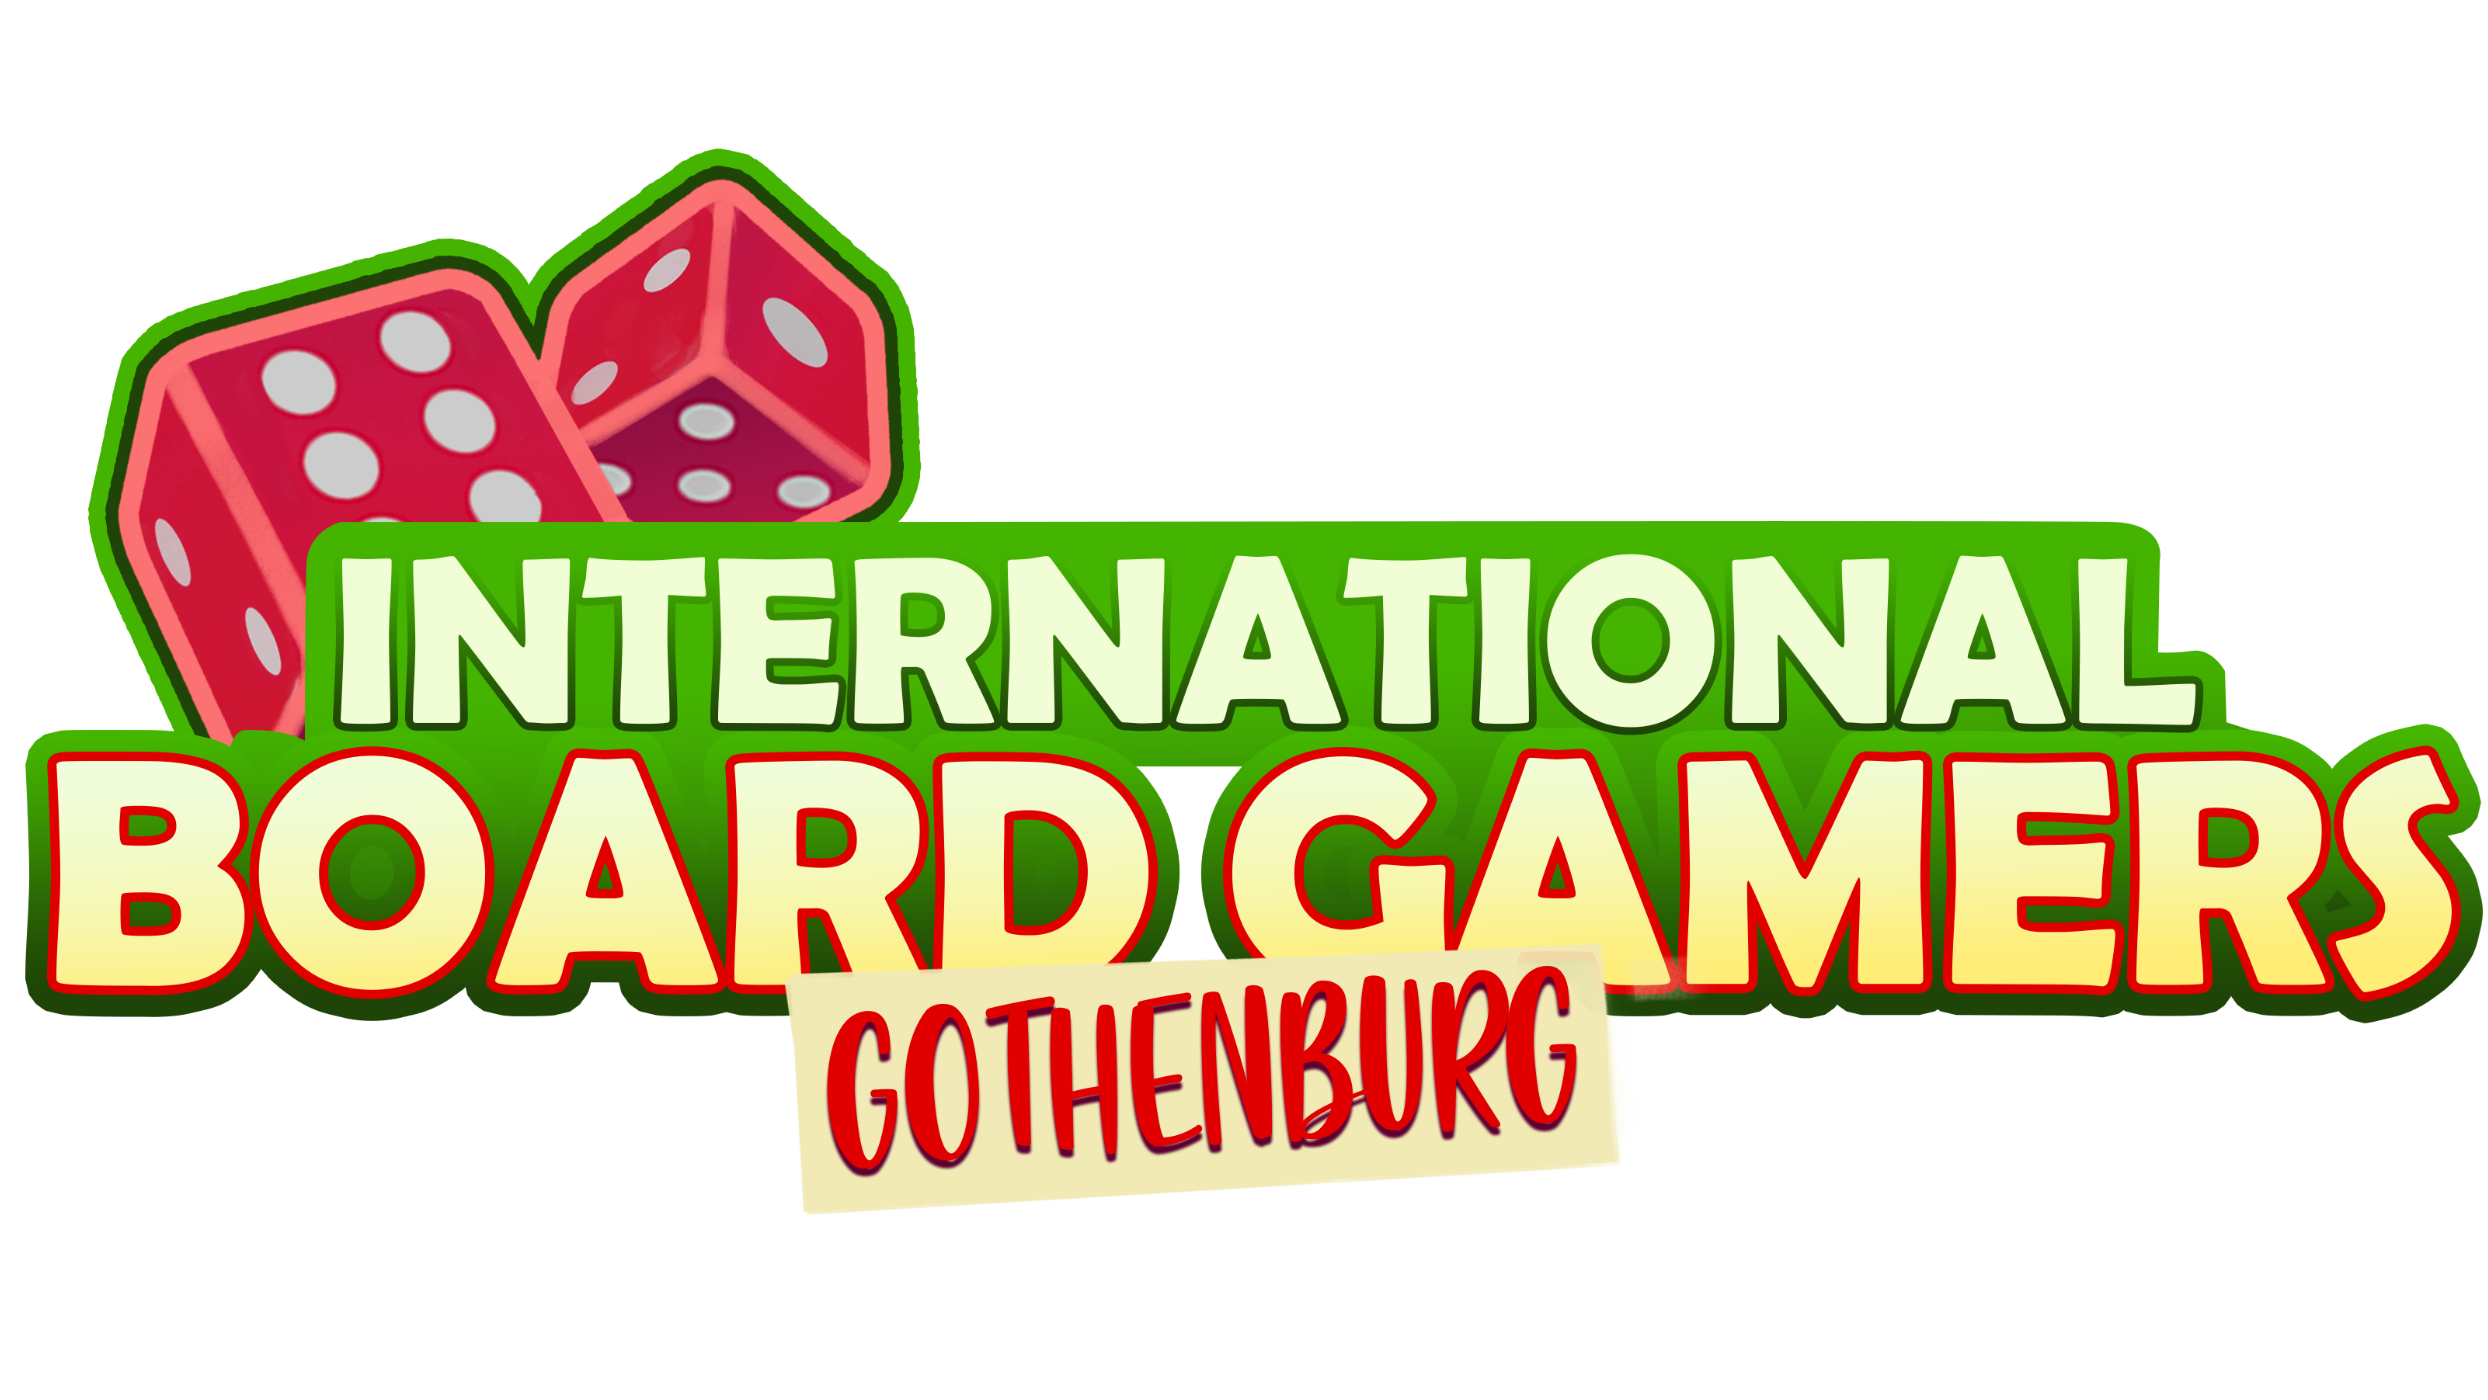 International Board Gamers - Gothenburg